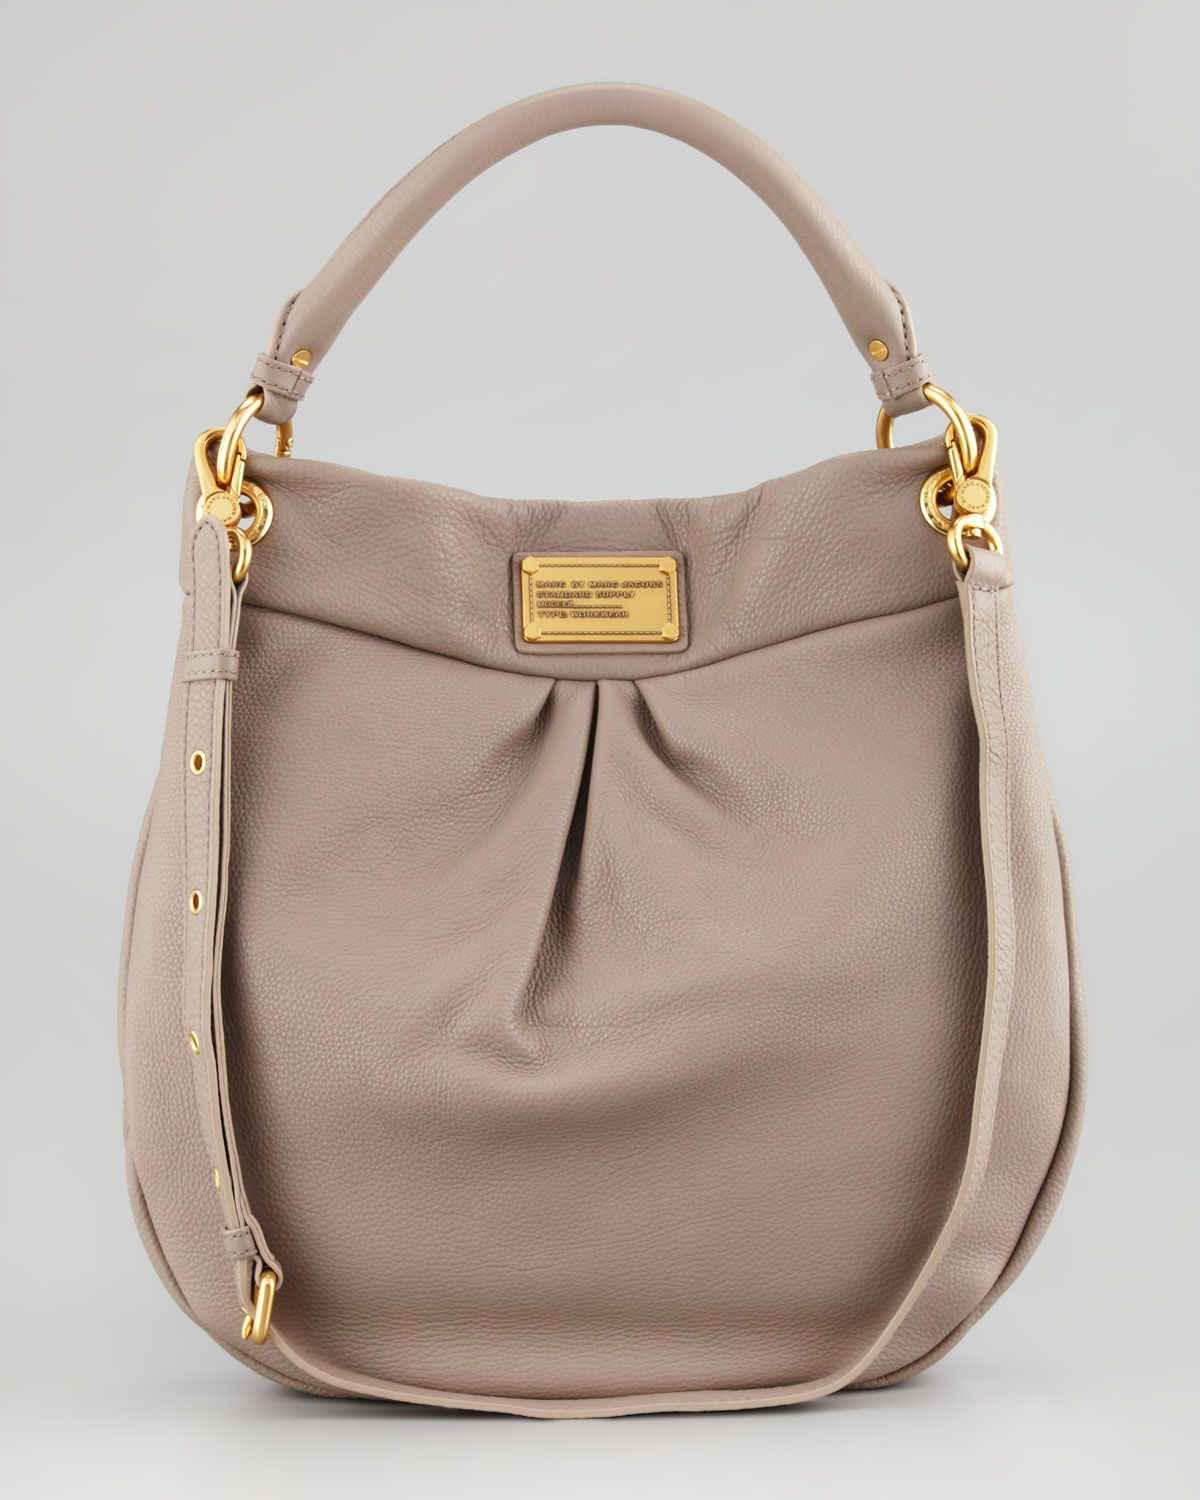 Classic Q Hillier Hobo Bag, Beige by Marc By Marc Jacobs at Neiman Marcus.